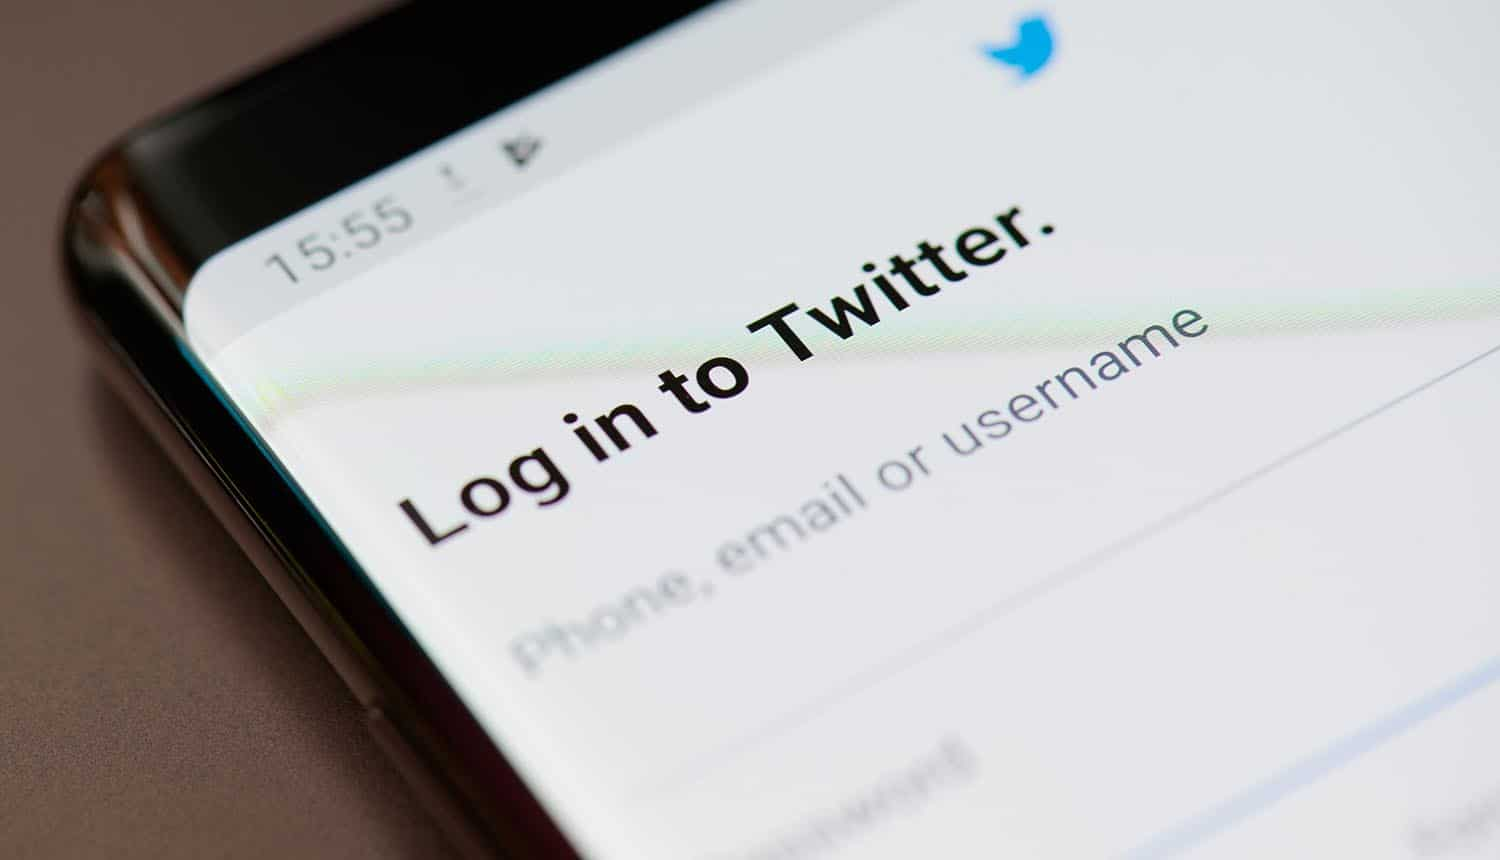 Log in to Twitter on smartphone screen showing Twitter hack